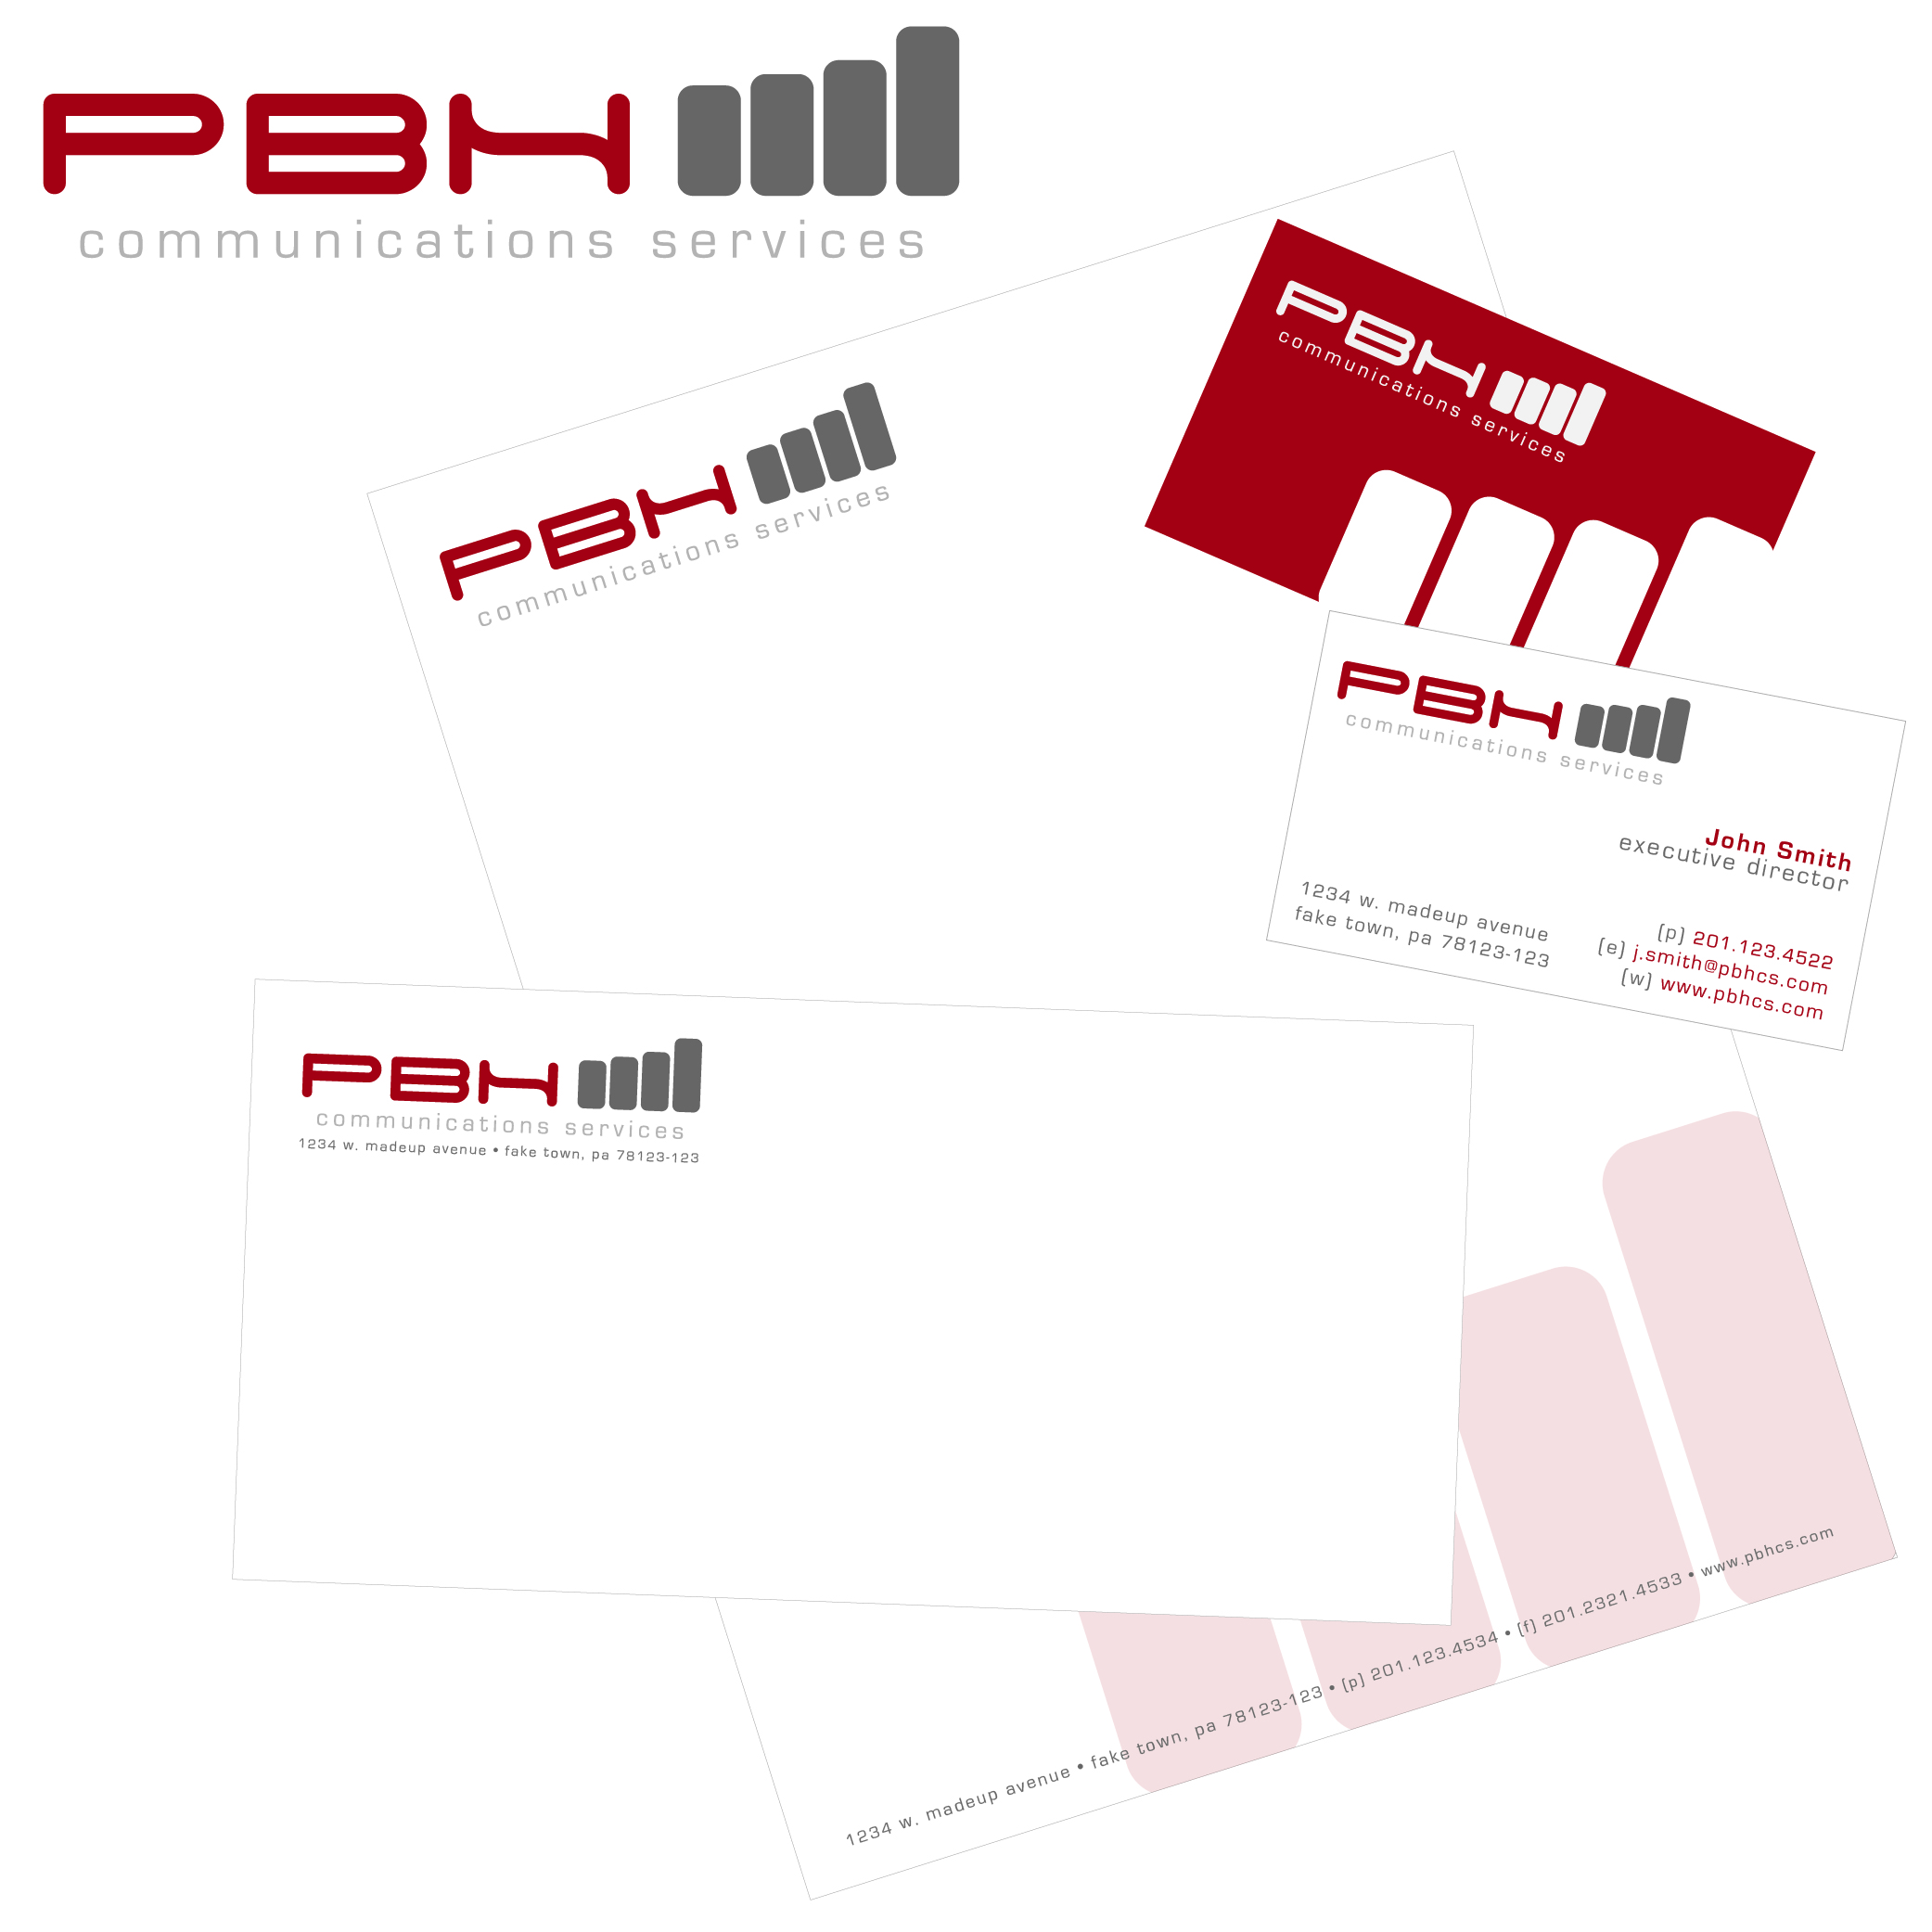 Business Card Design by hmdesigns - Entry No. 4 in the Business Card Design Contest PBH Communications Services Stationery Design.